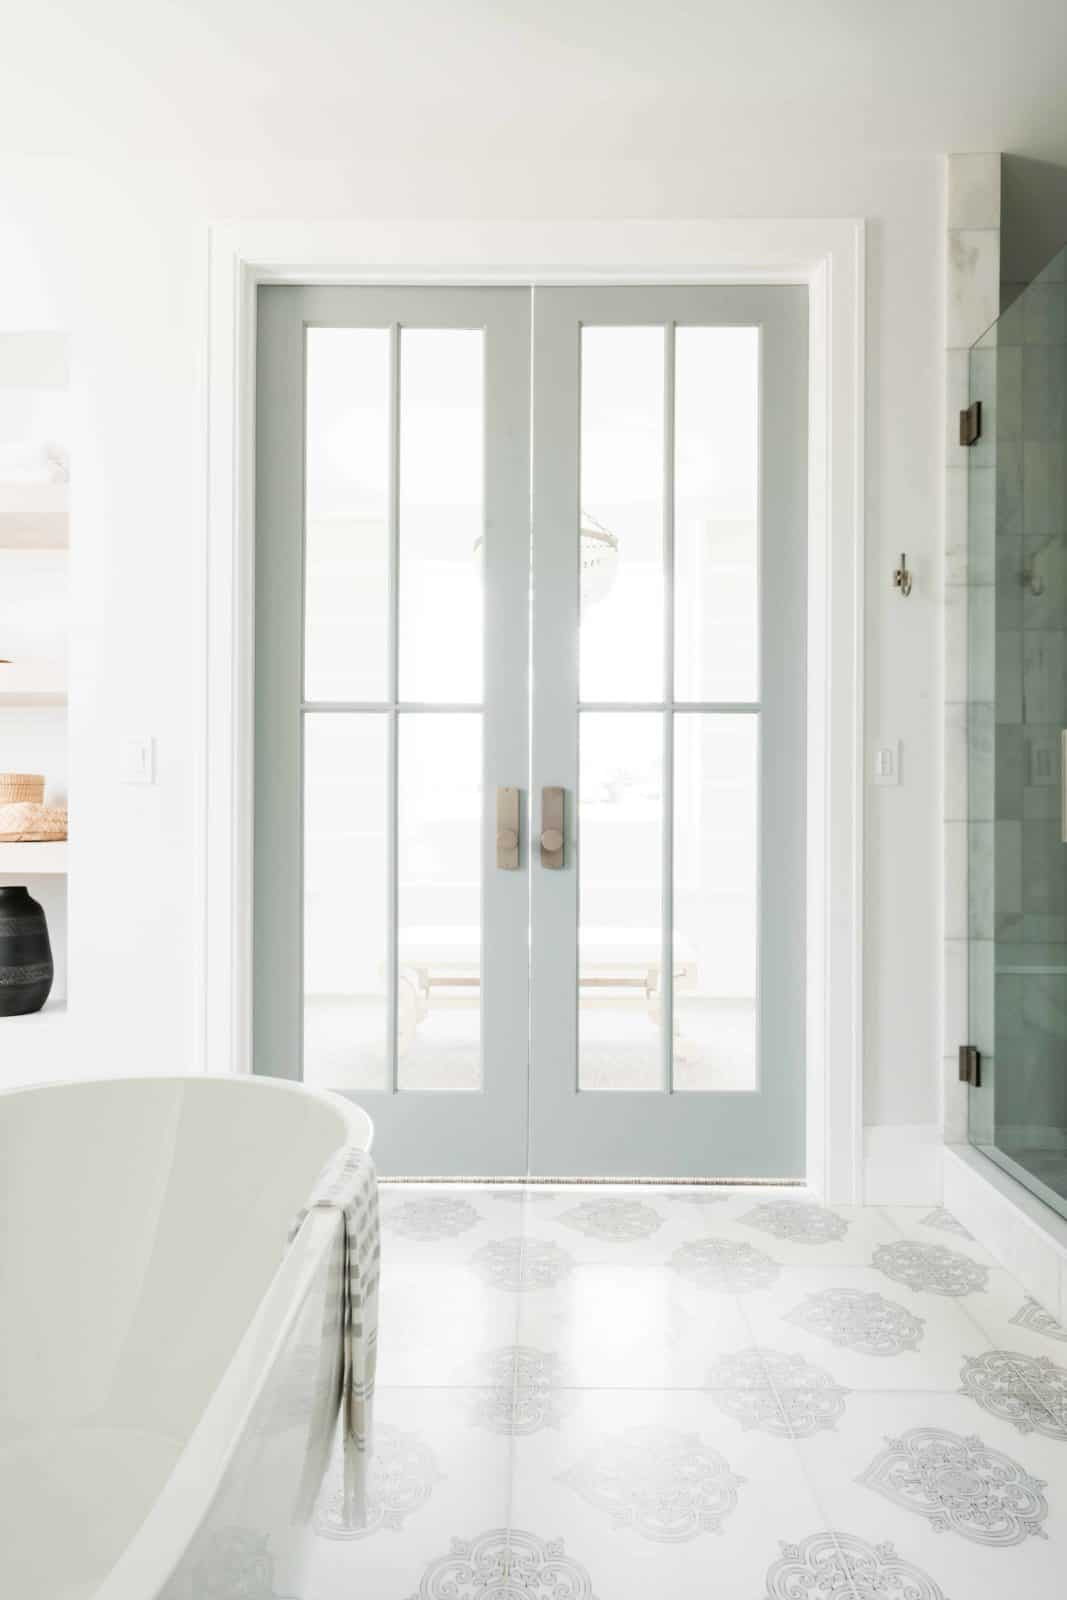 Caprice Bath Floor Modern Door